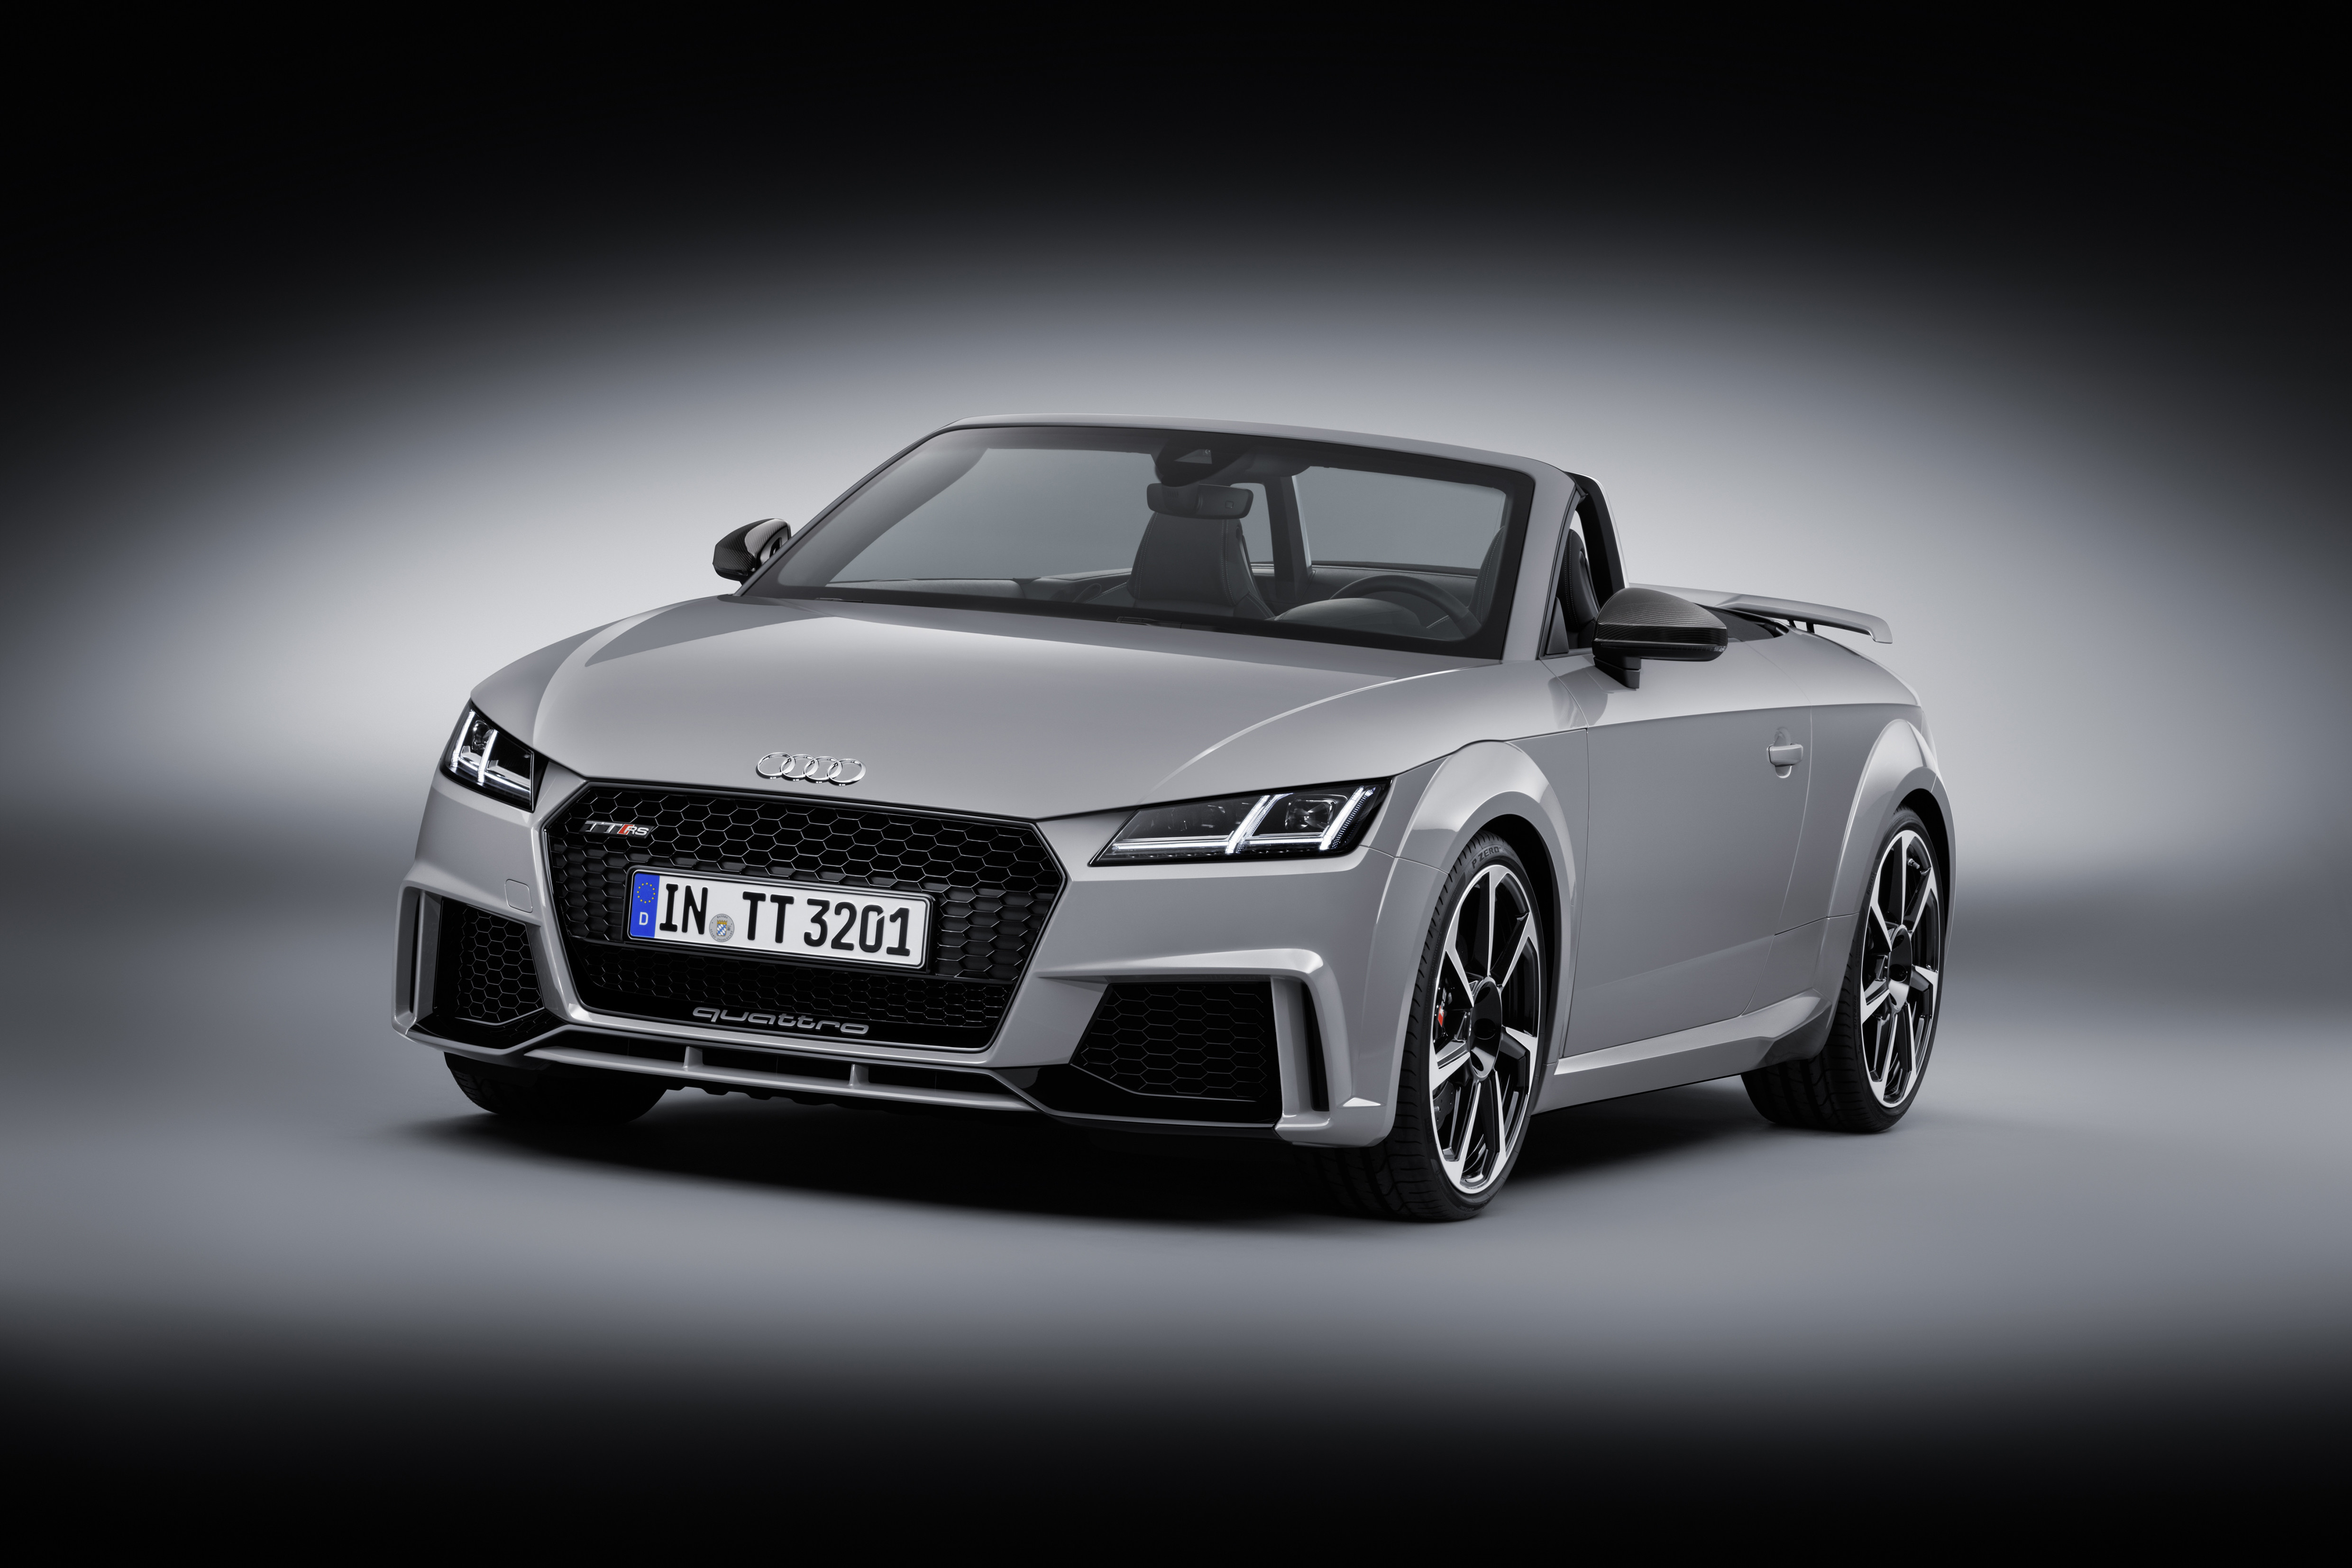 2016 Audi Tt Rs Coupe Roadster Debut With 400 Hp Image 482862